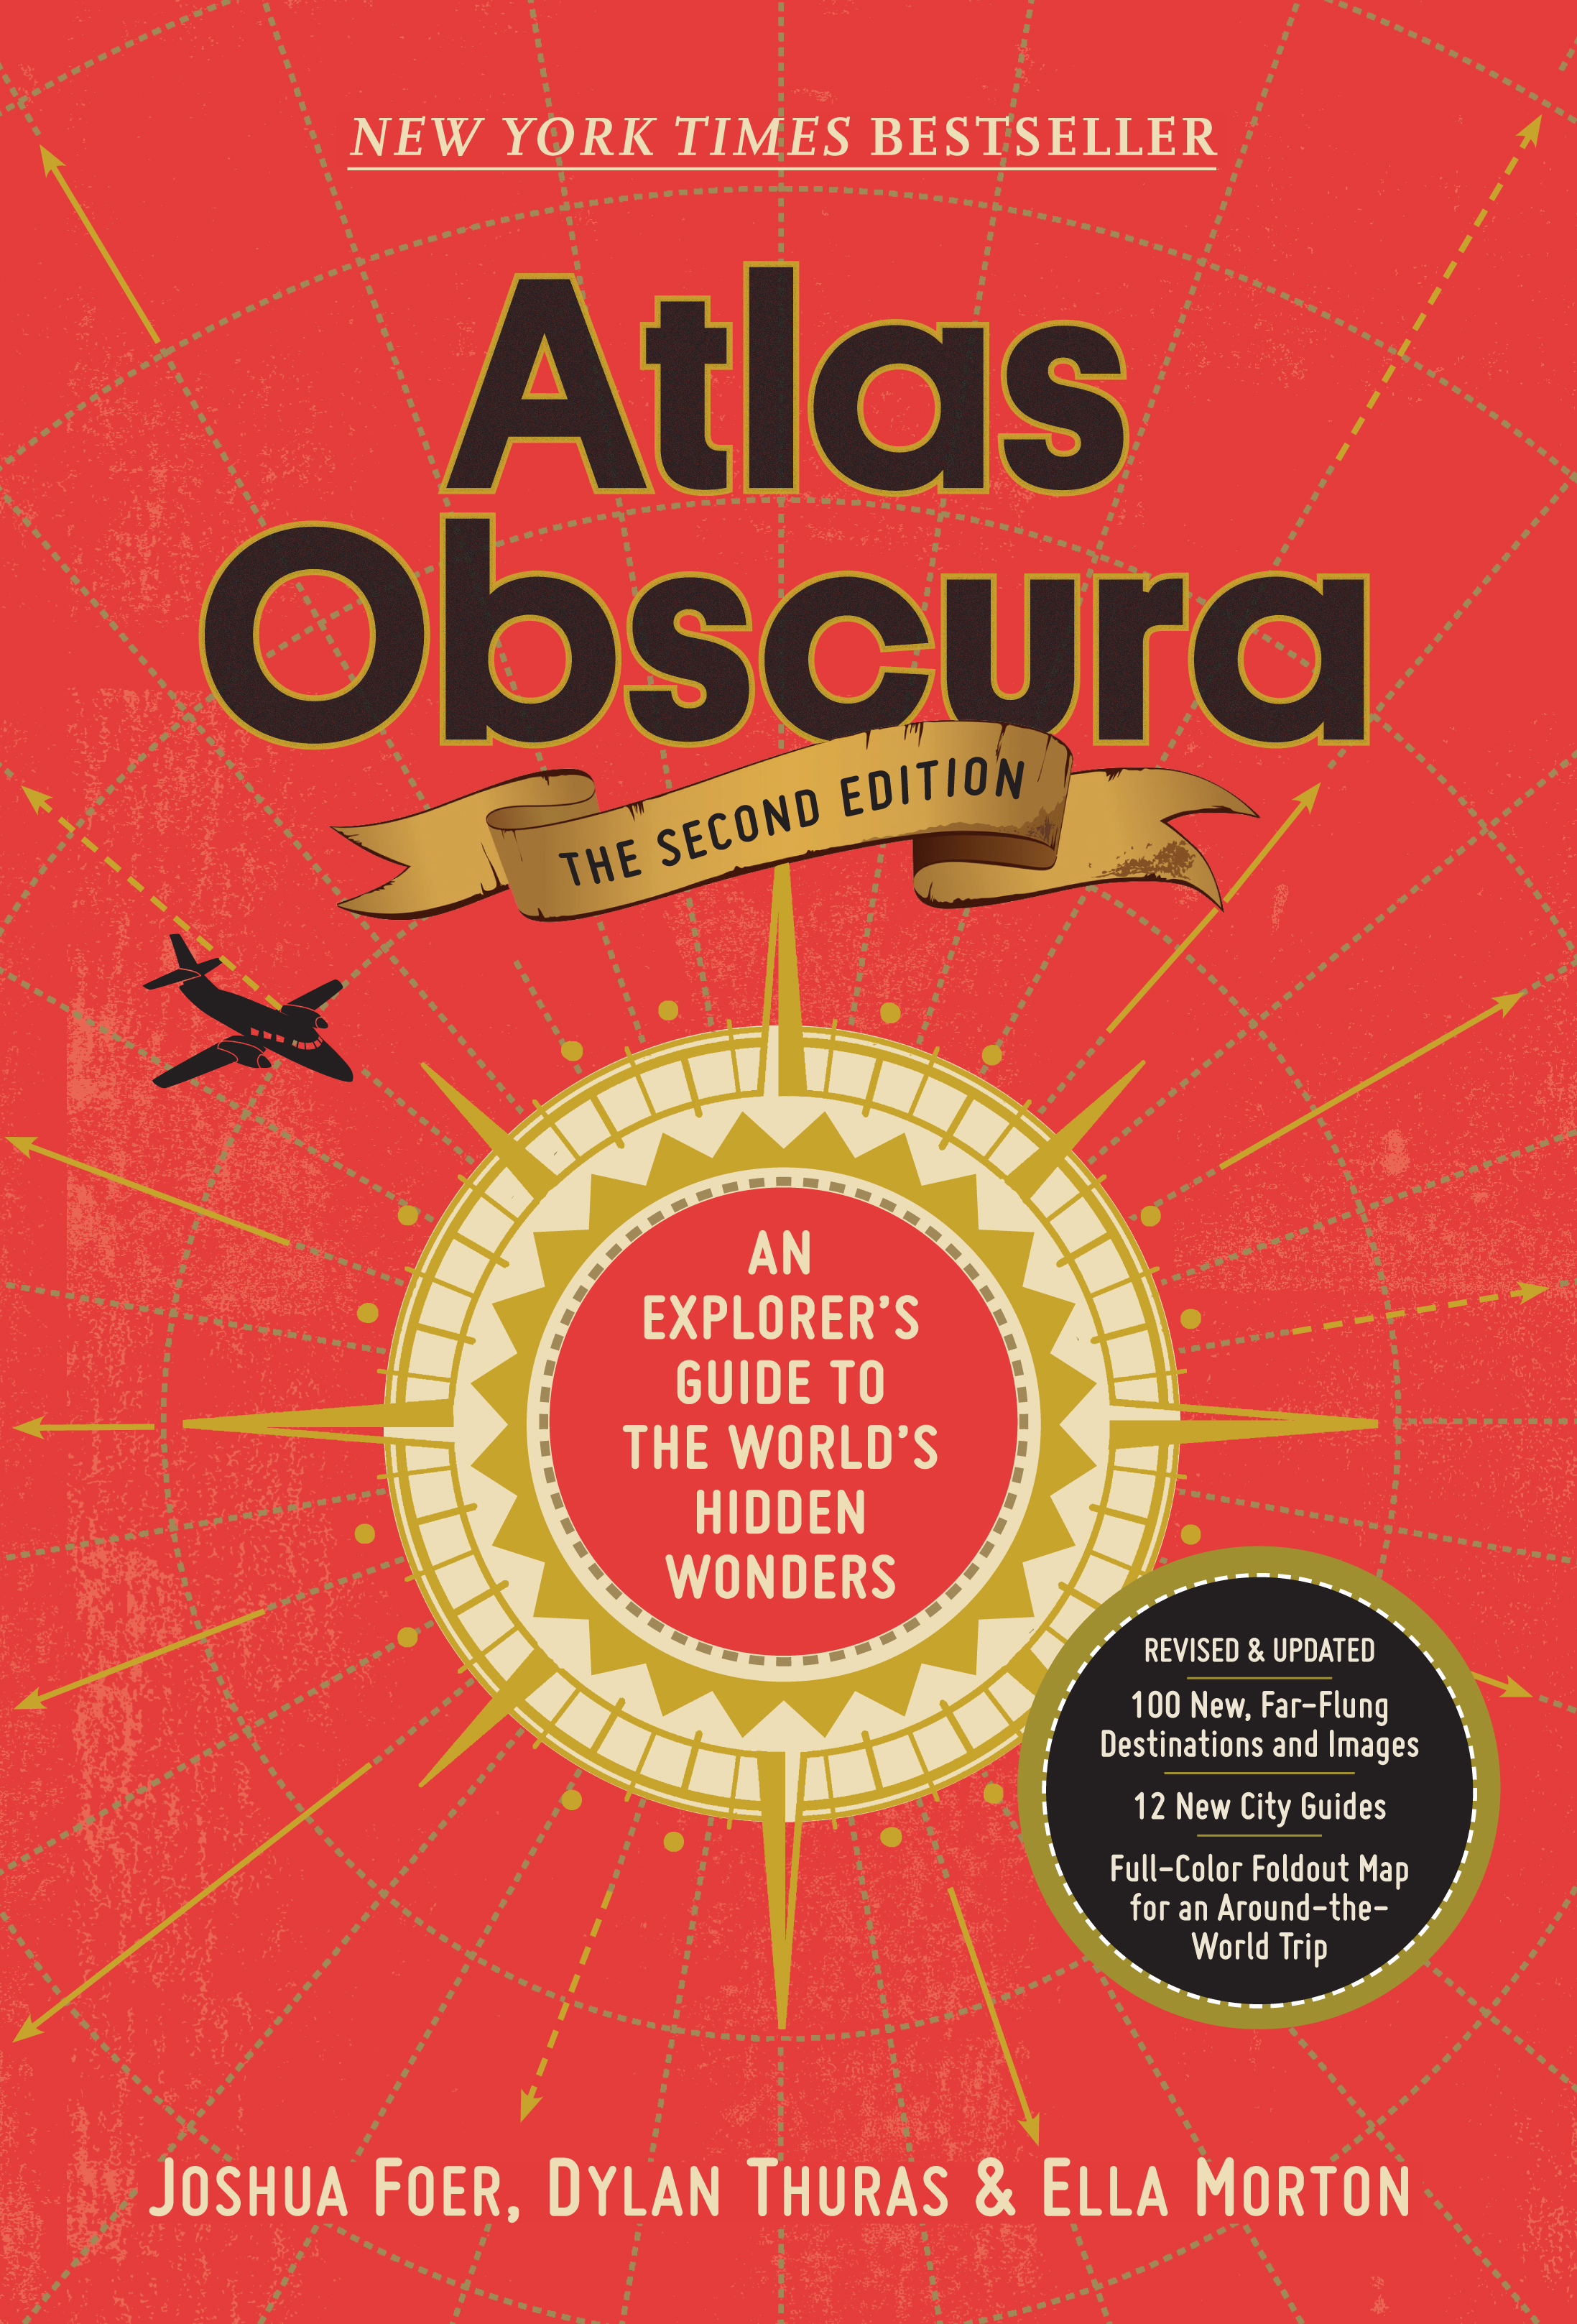 Atlas Obscura, 2nd Edition An Explorer's Guide to the World's Hidden Wonders